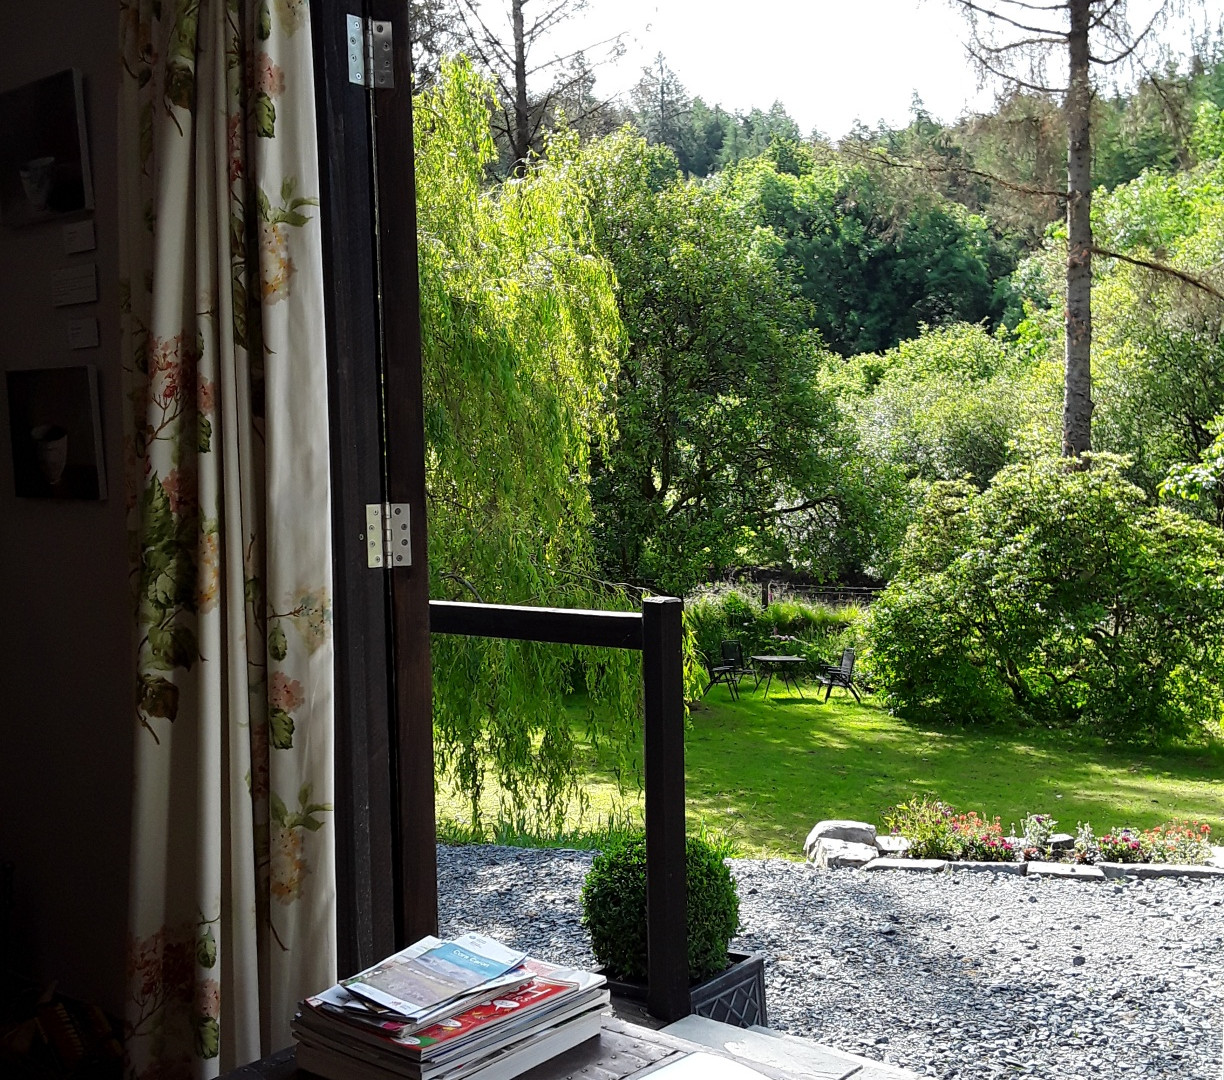 Looking out from the lodge